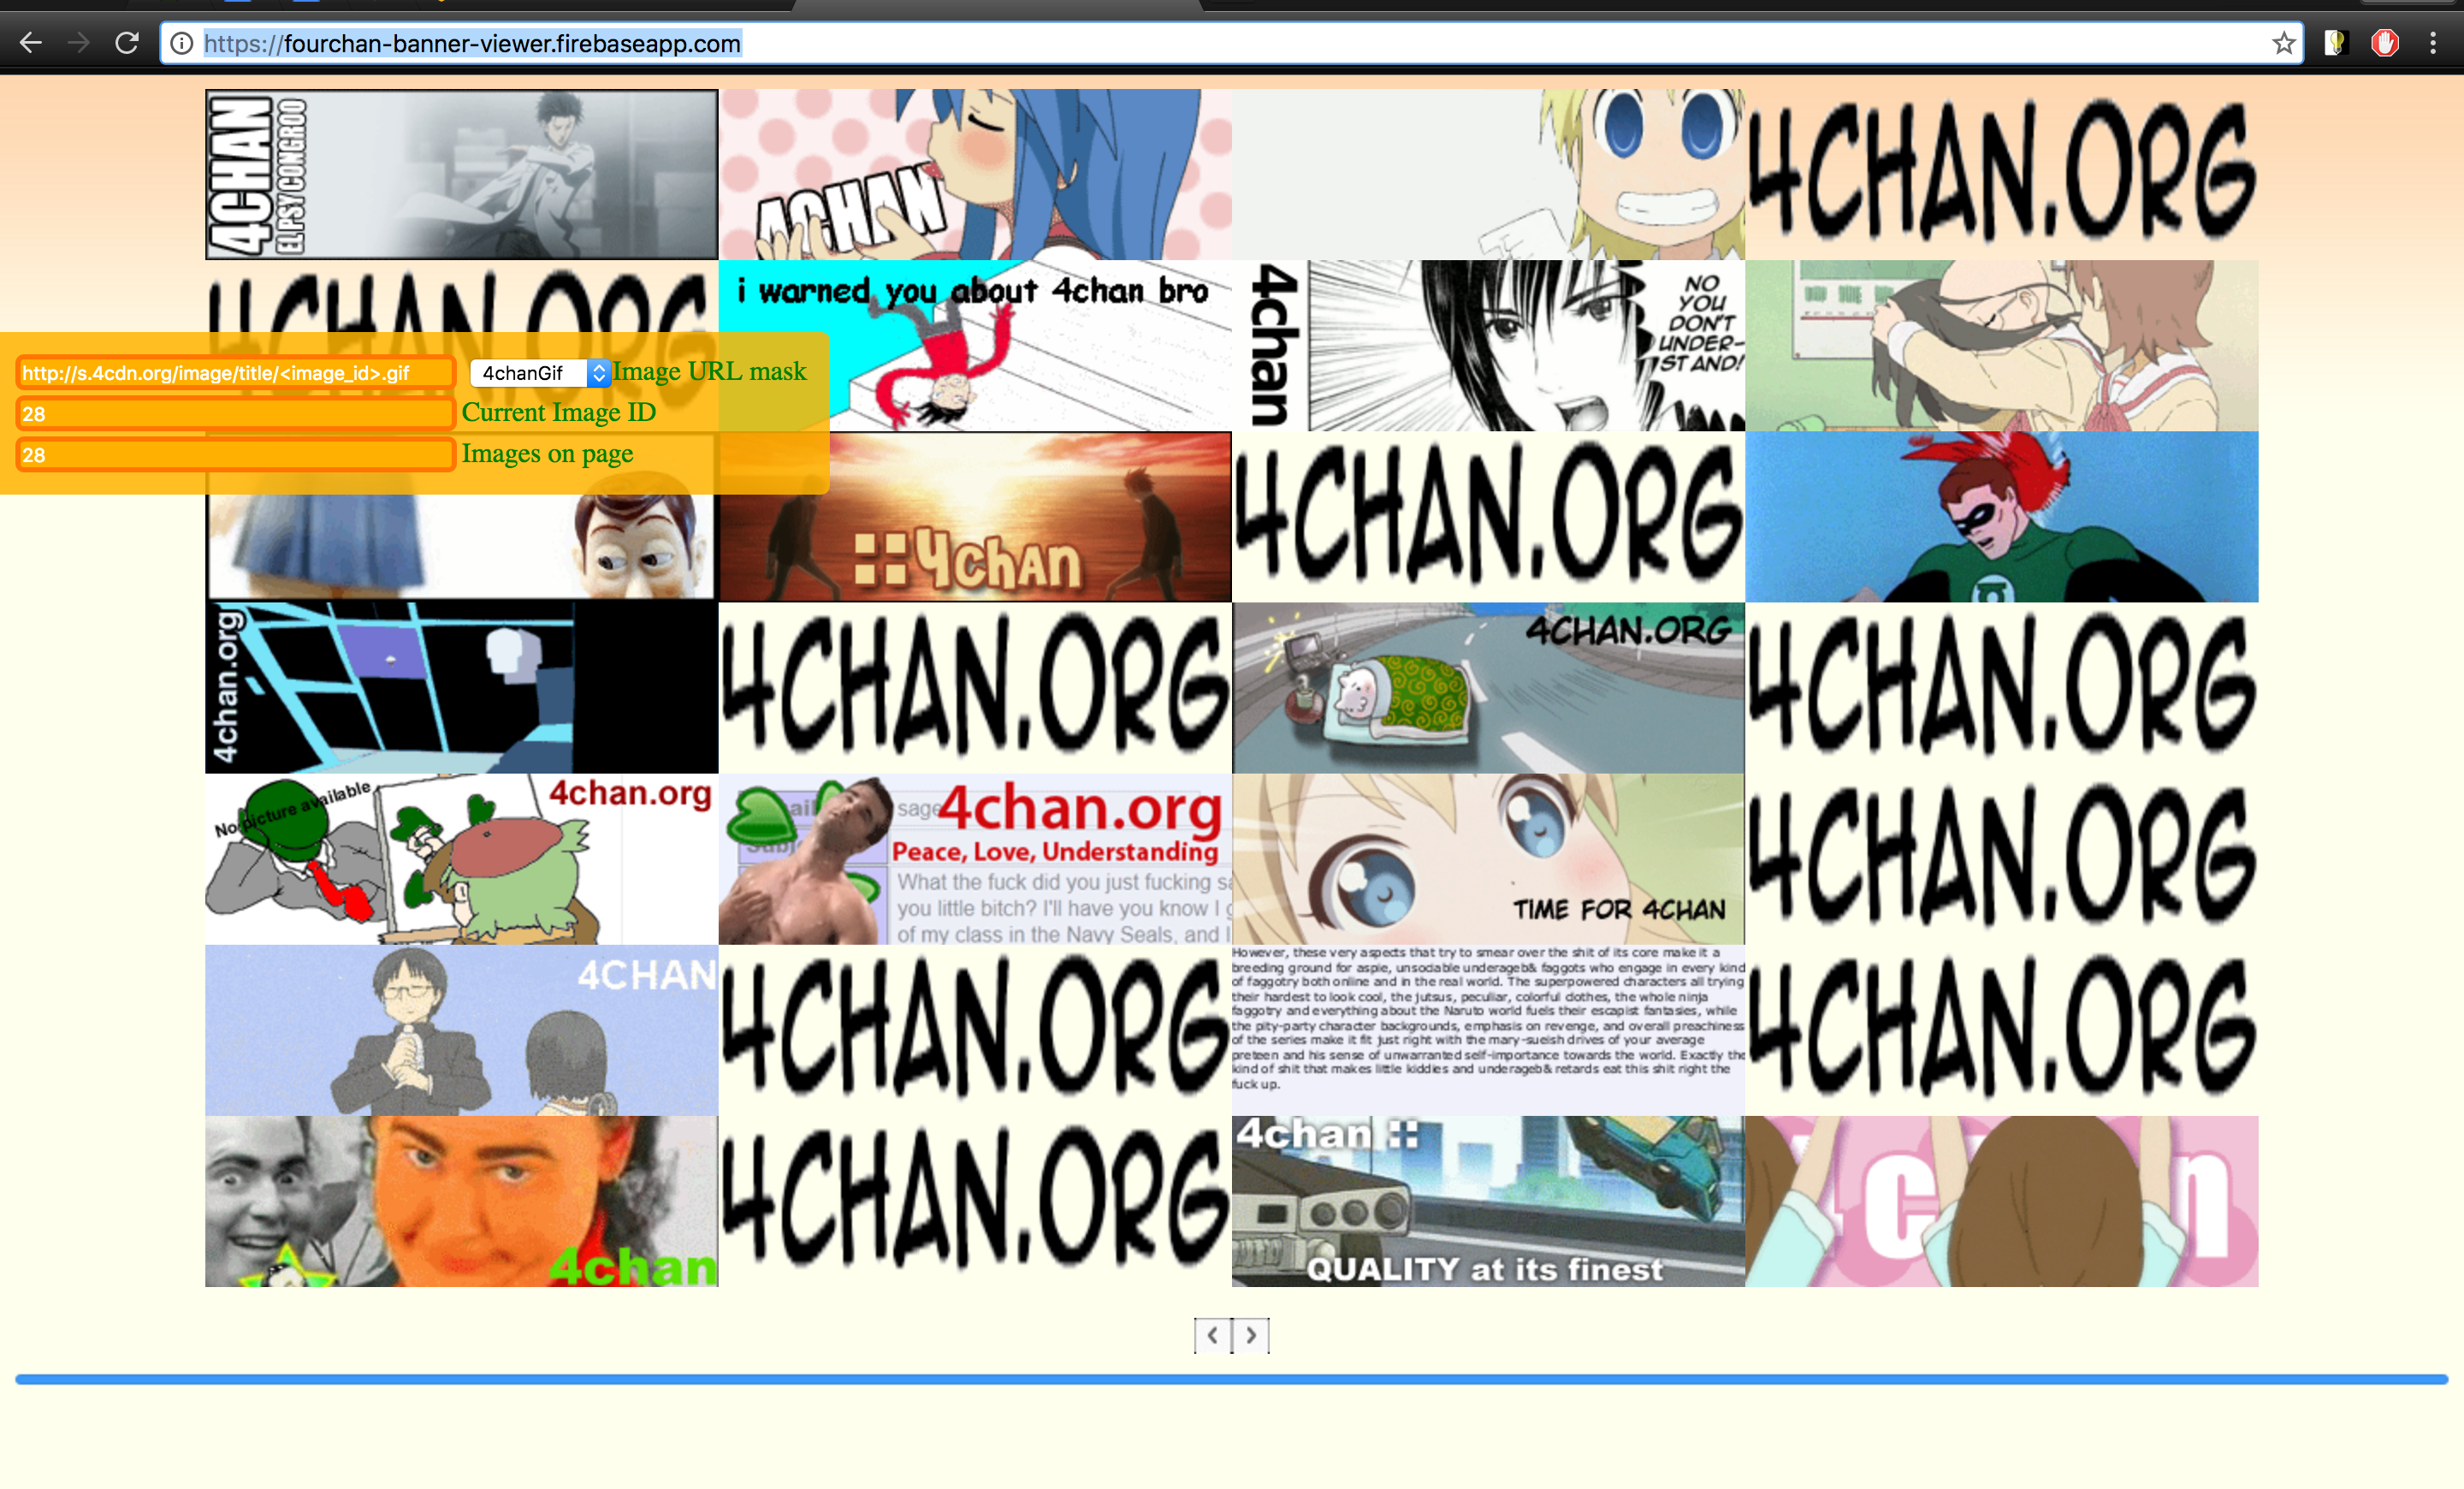 4chan-banner-viewer/README md at master · 0x384c0/4chan